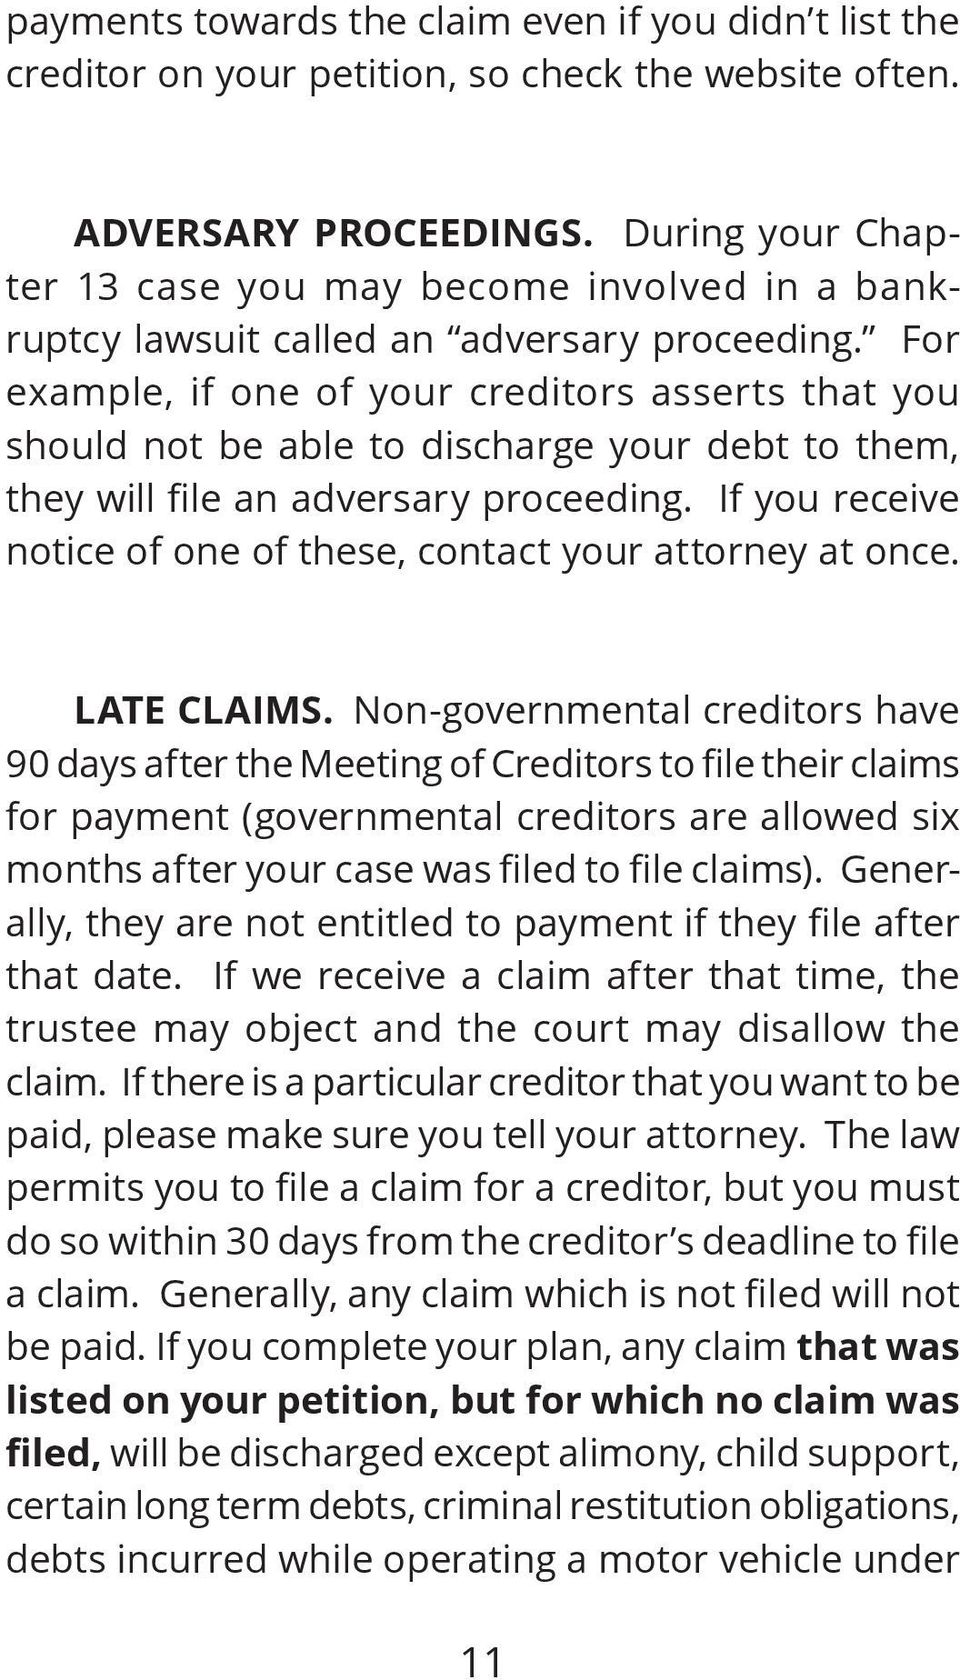 For example, if one of your creditors asserts that you should not be able to discharge your debt to them, they will file an adversary proceeding.